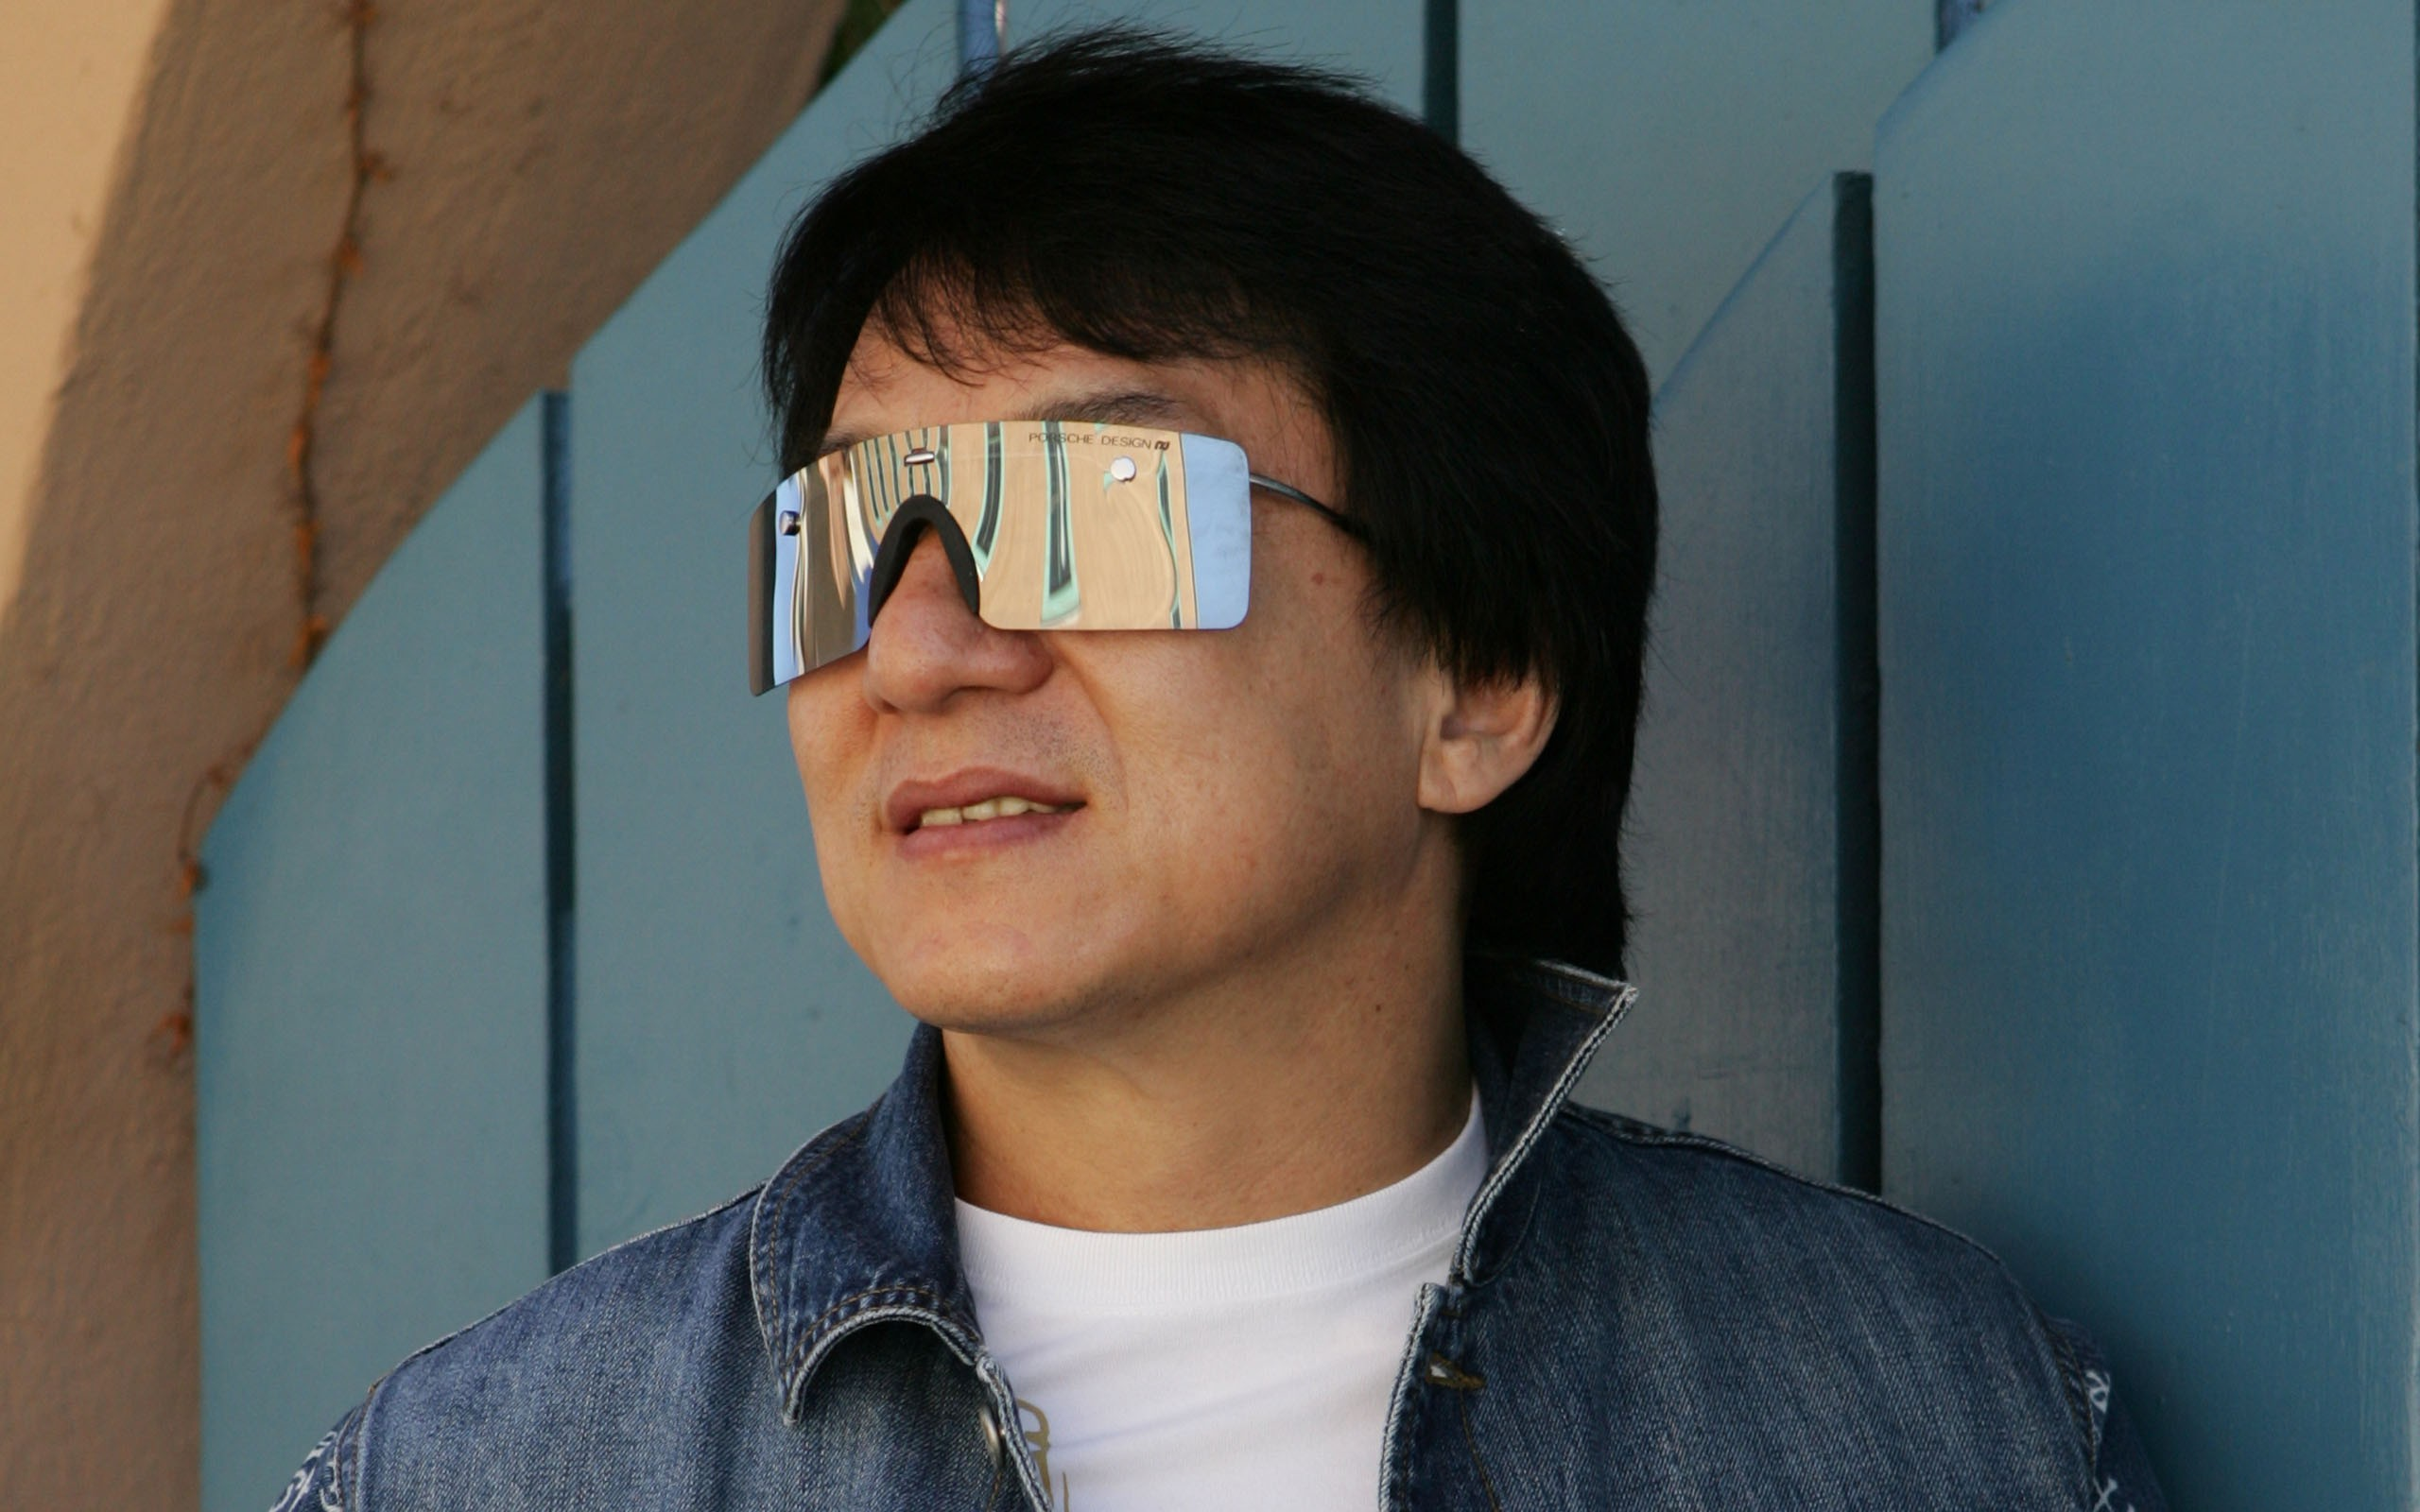 Jackie Chan Glasses Wallpaper Background 54870 2560x1600px